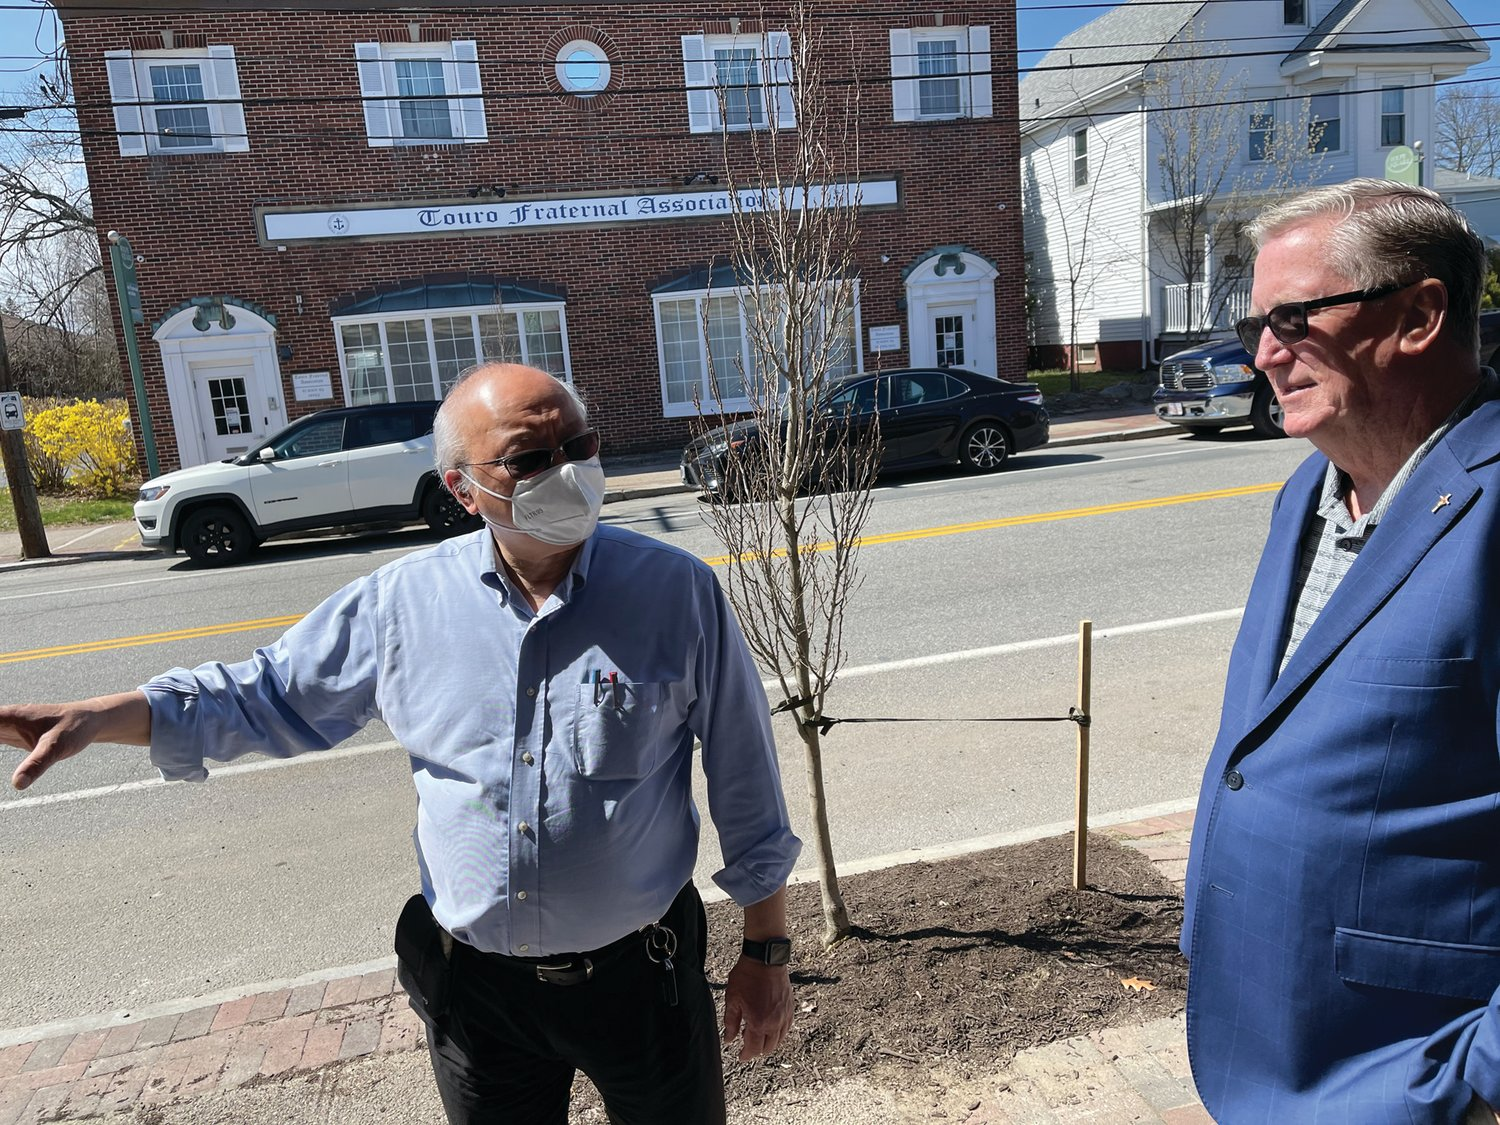 MEETING UP: Charlie Chin, left, a restaurateur and property owner on Rolfe Square, chats with Mayor Ken Hopkins outside Coffee & Crumbs last week. (Herald photos)